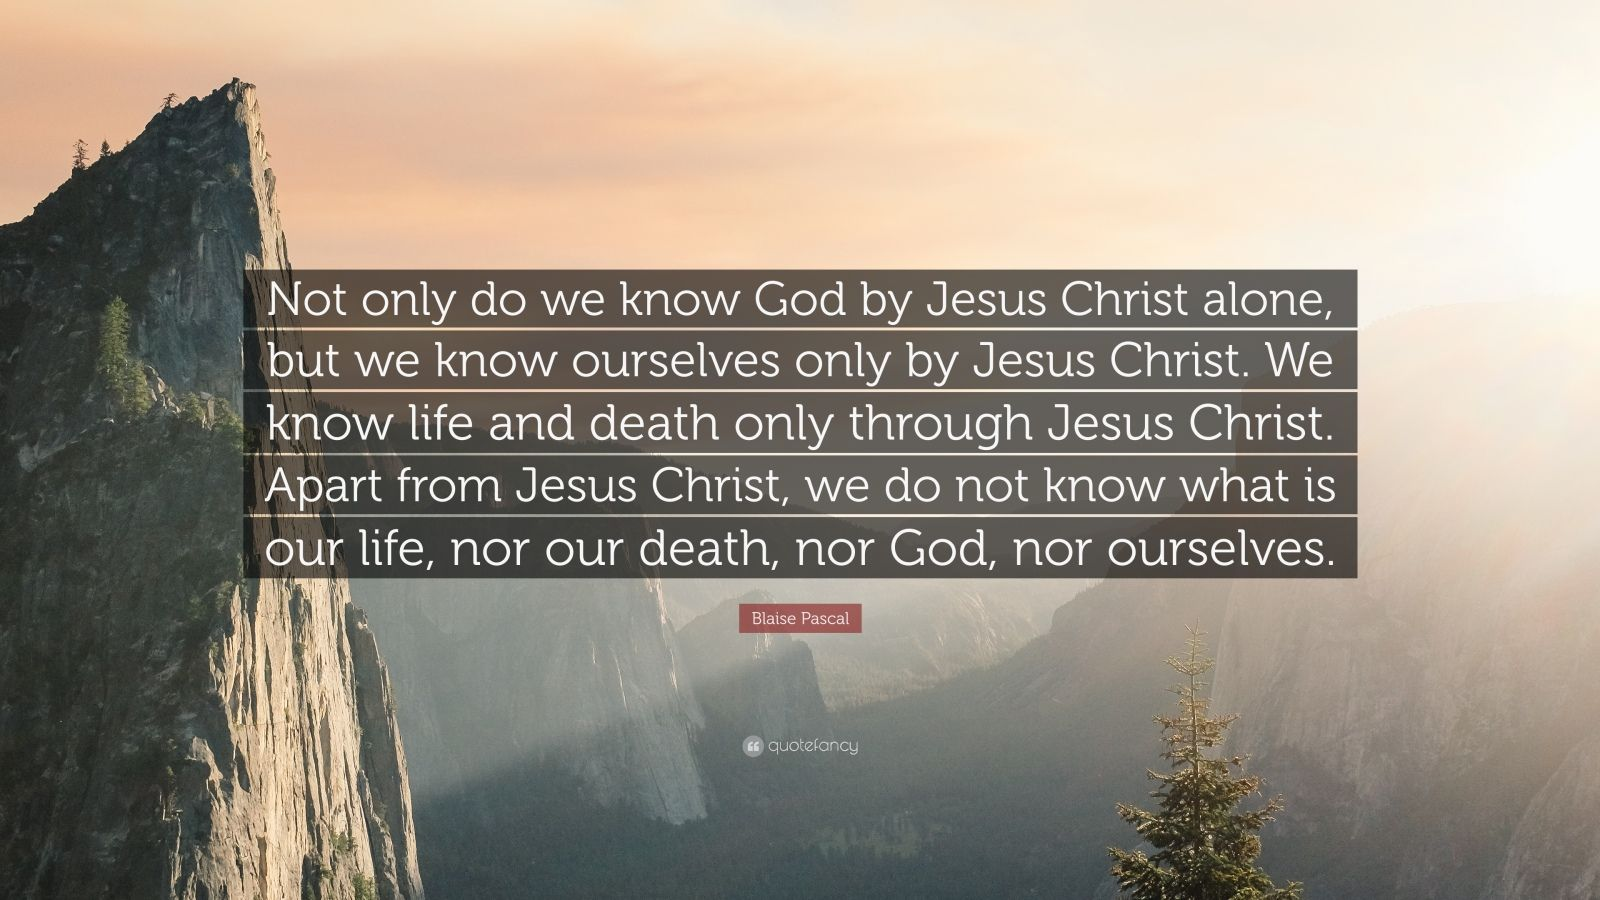 """Blaise Pascal Quote: """"Not only do we know God by Jesus Christ alone, but we know ourselves only by Jesus Christ. We know life and death only through Jesus Christ. Apart from Jesus Christ, we do not know what is our life, nor our death, nor God, nor ourselves."""""""